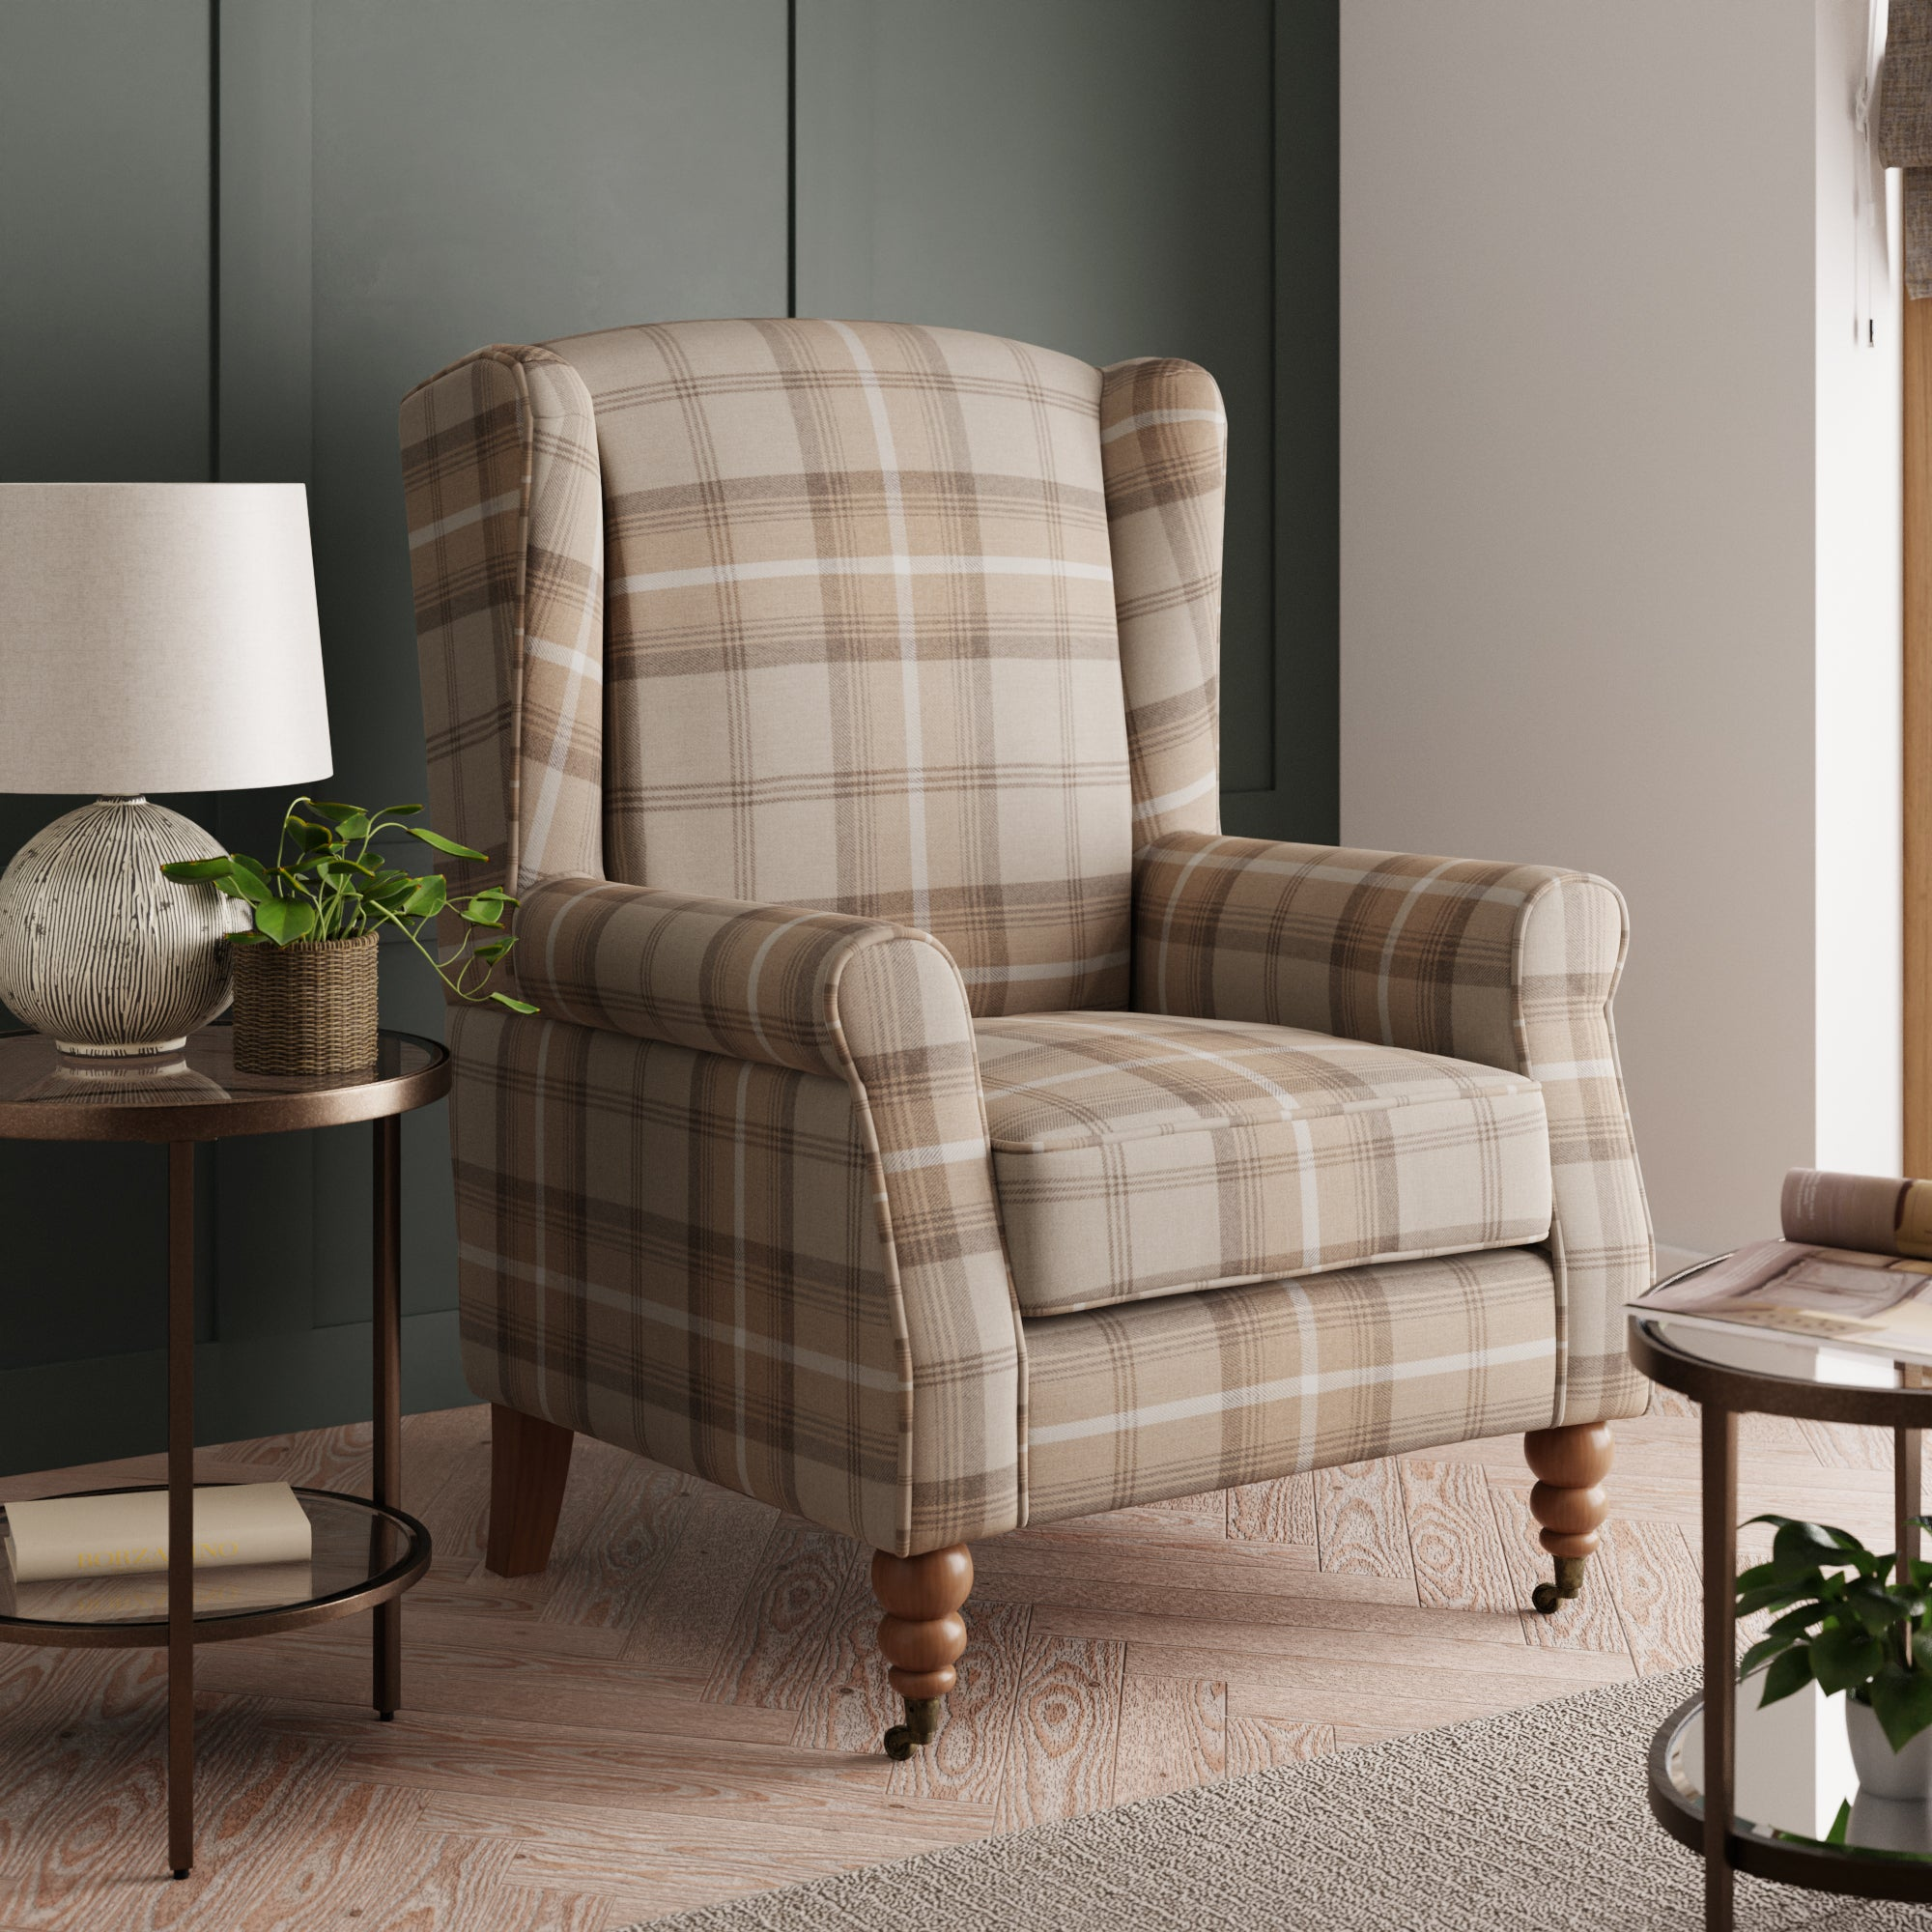 Oswald Grande Check Wingback Armchair - Natural Beige and White